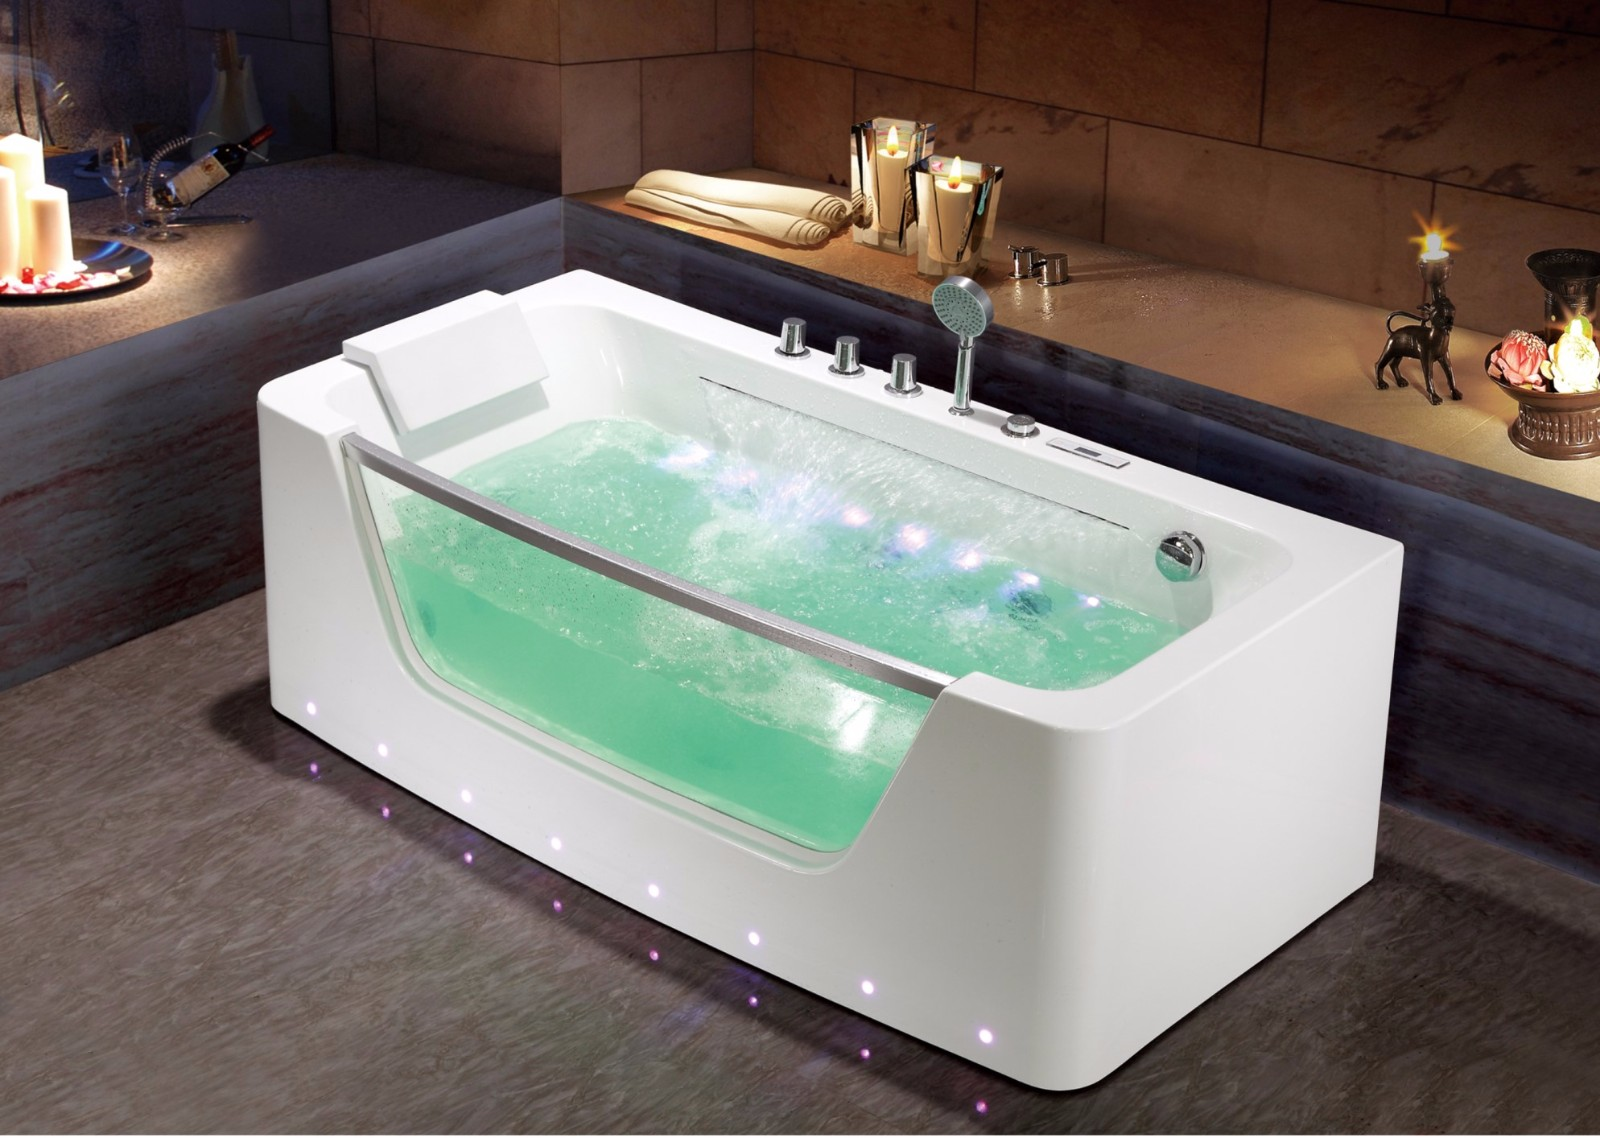 C-445 C-446 C-447Hot Tub Bathroom Bathtub for Sale_副本.jpg